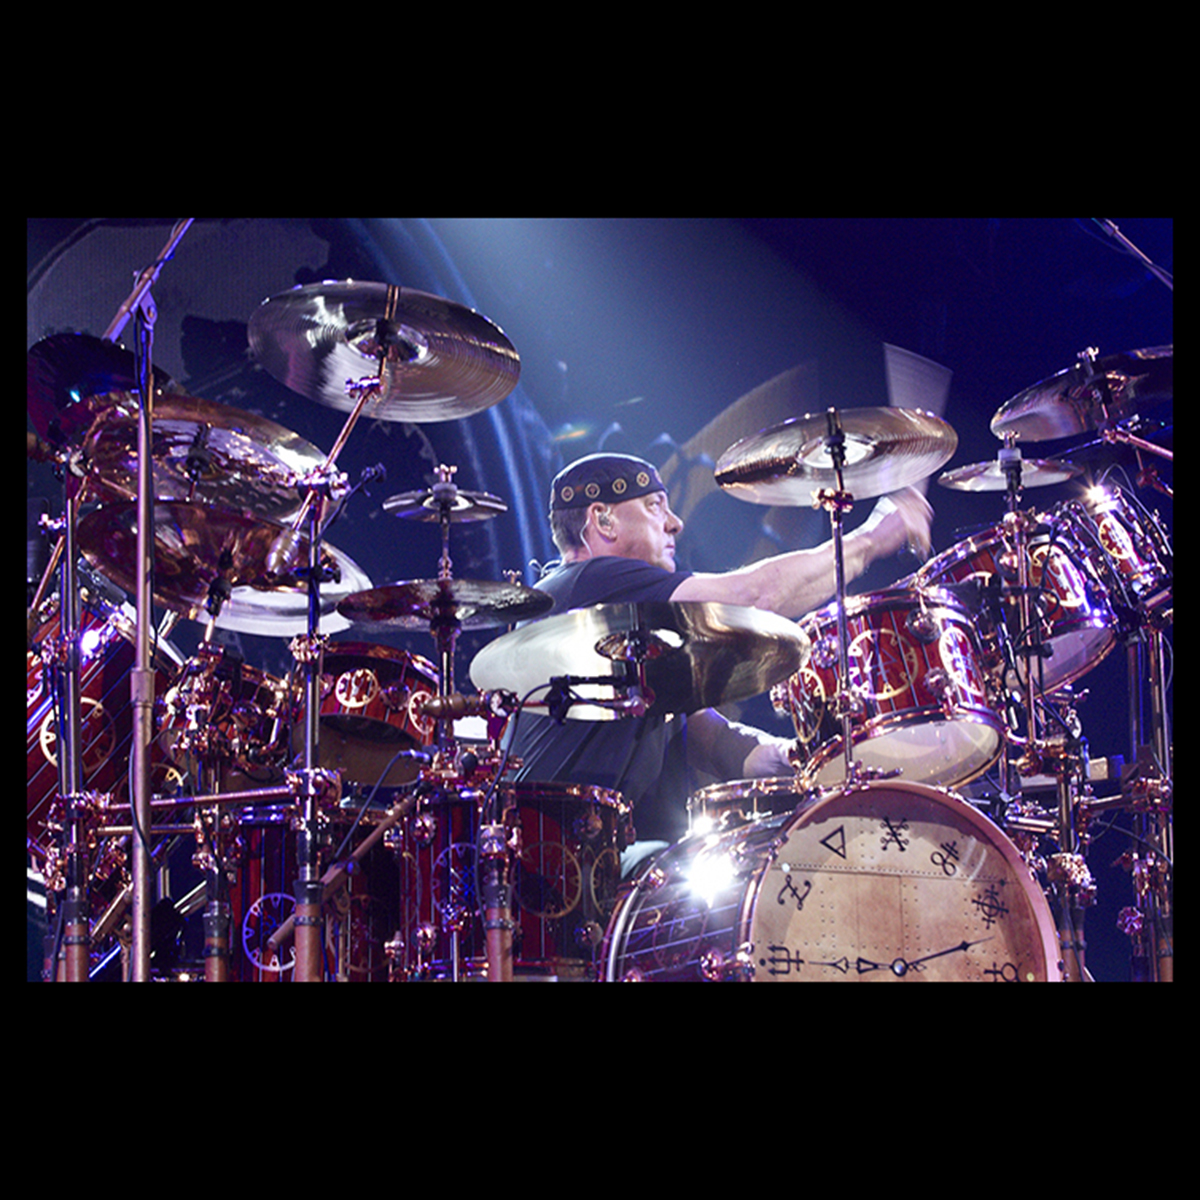 Legendary Rush Drummer Neil Peart Succumbs To Brain Cancer